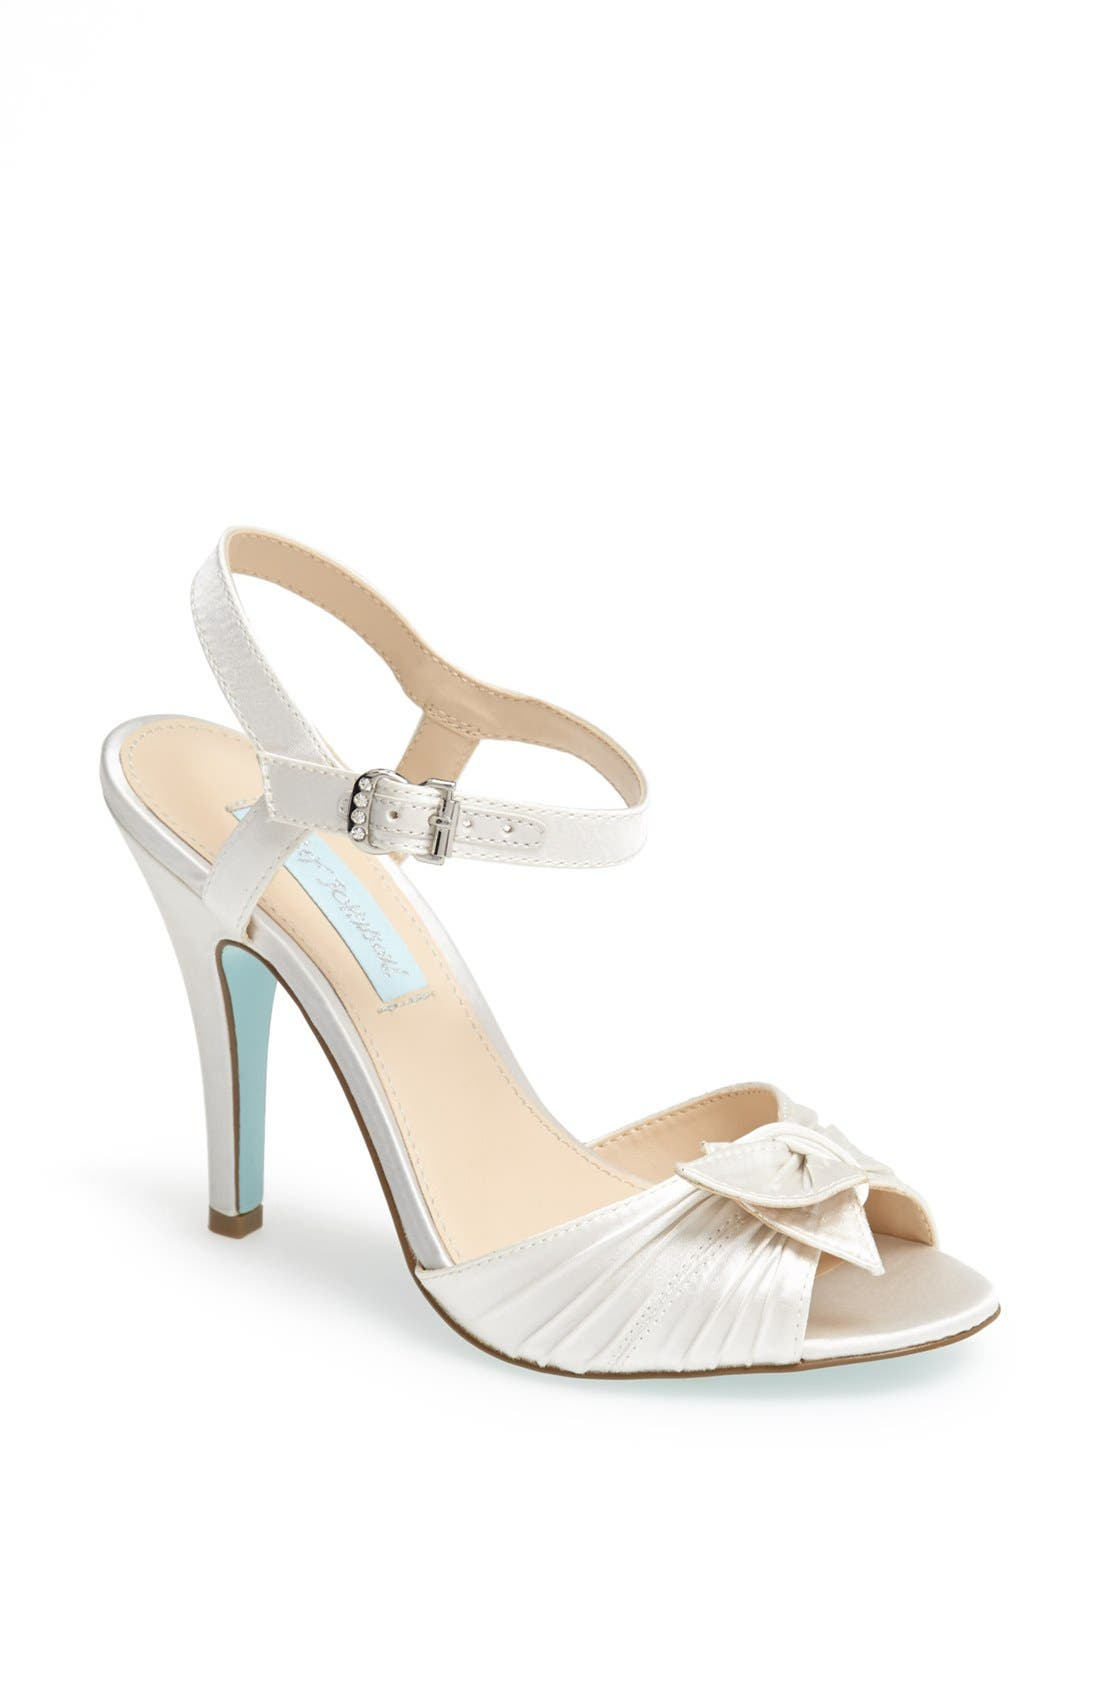 Alternate Image 1 Selected - Blue by Betsey Johnson 'Party' Satin Sandal